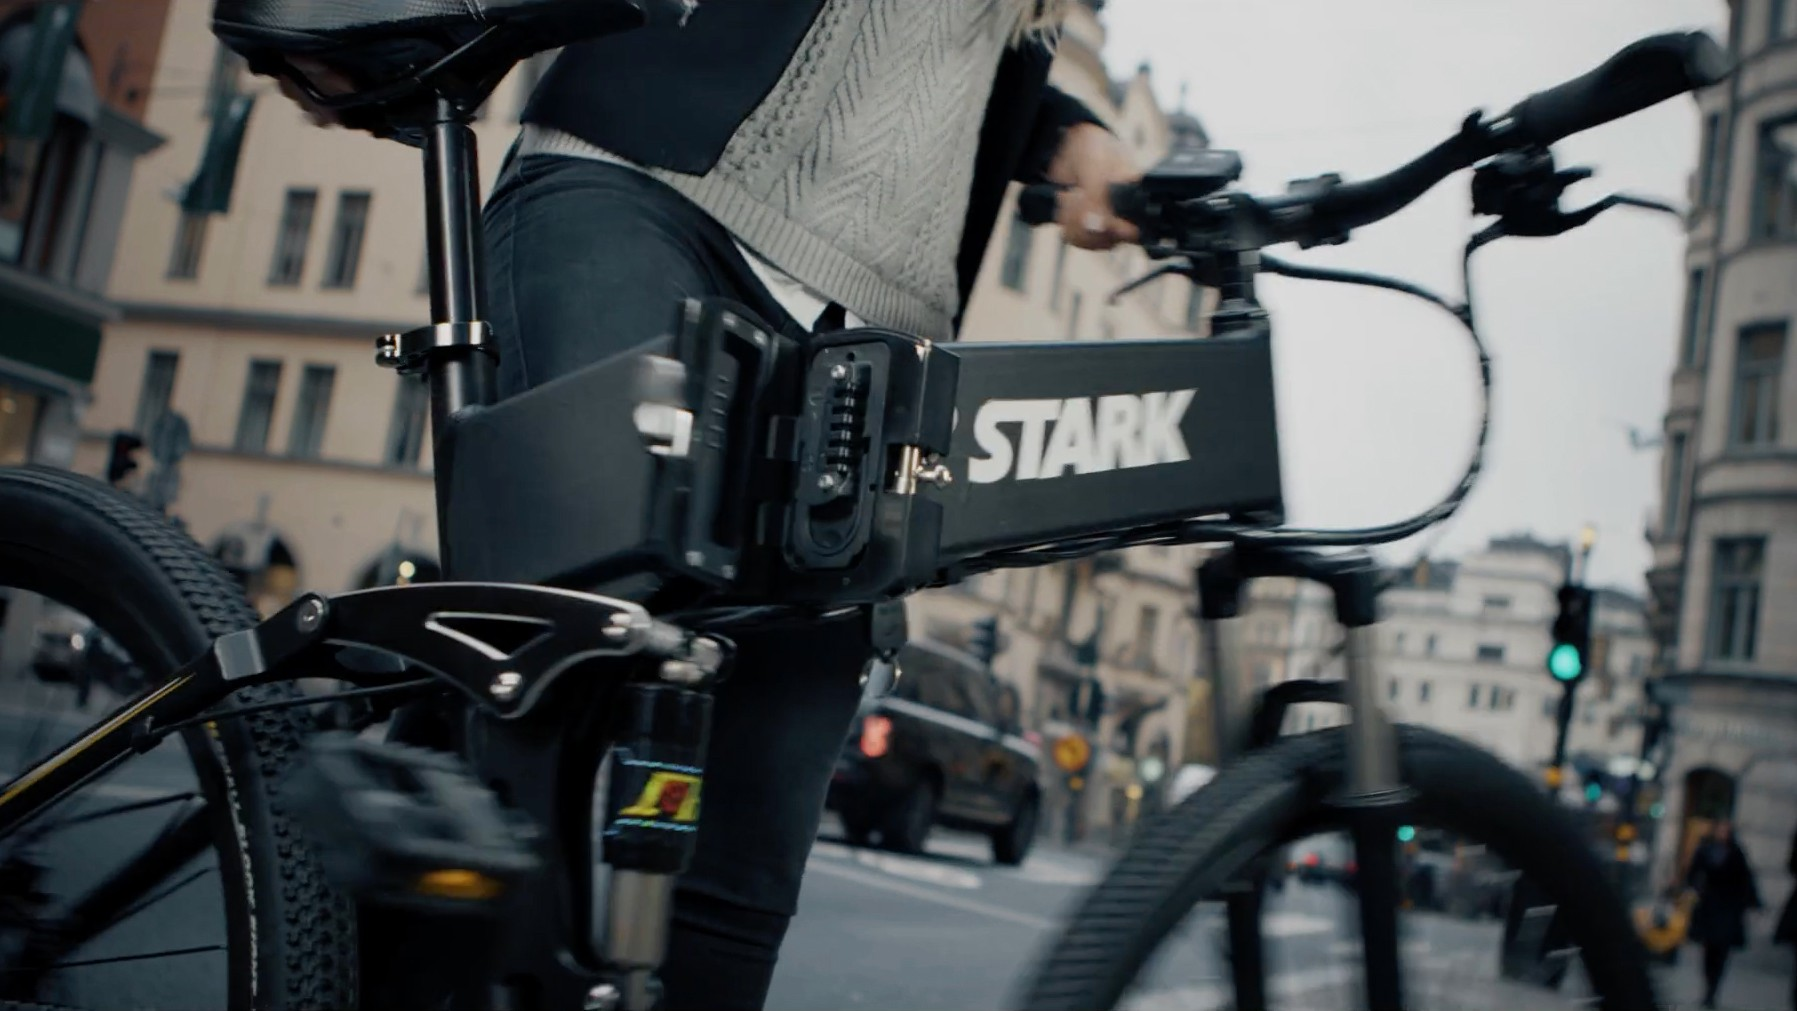 Foldability makes the Stark Drive more secure for storing on city streets, according to the company